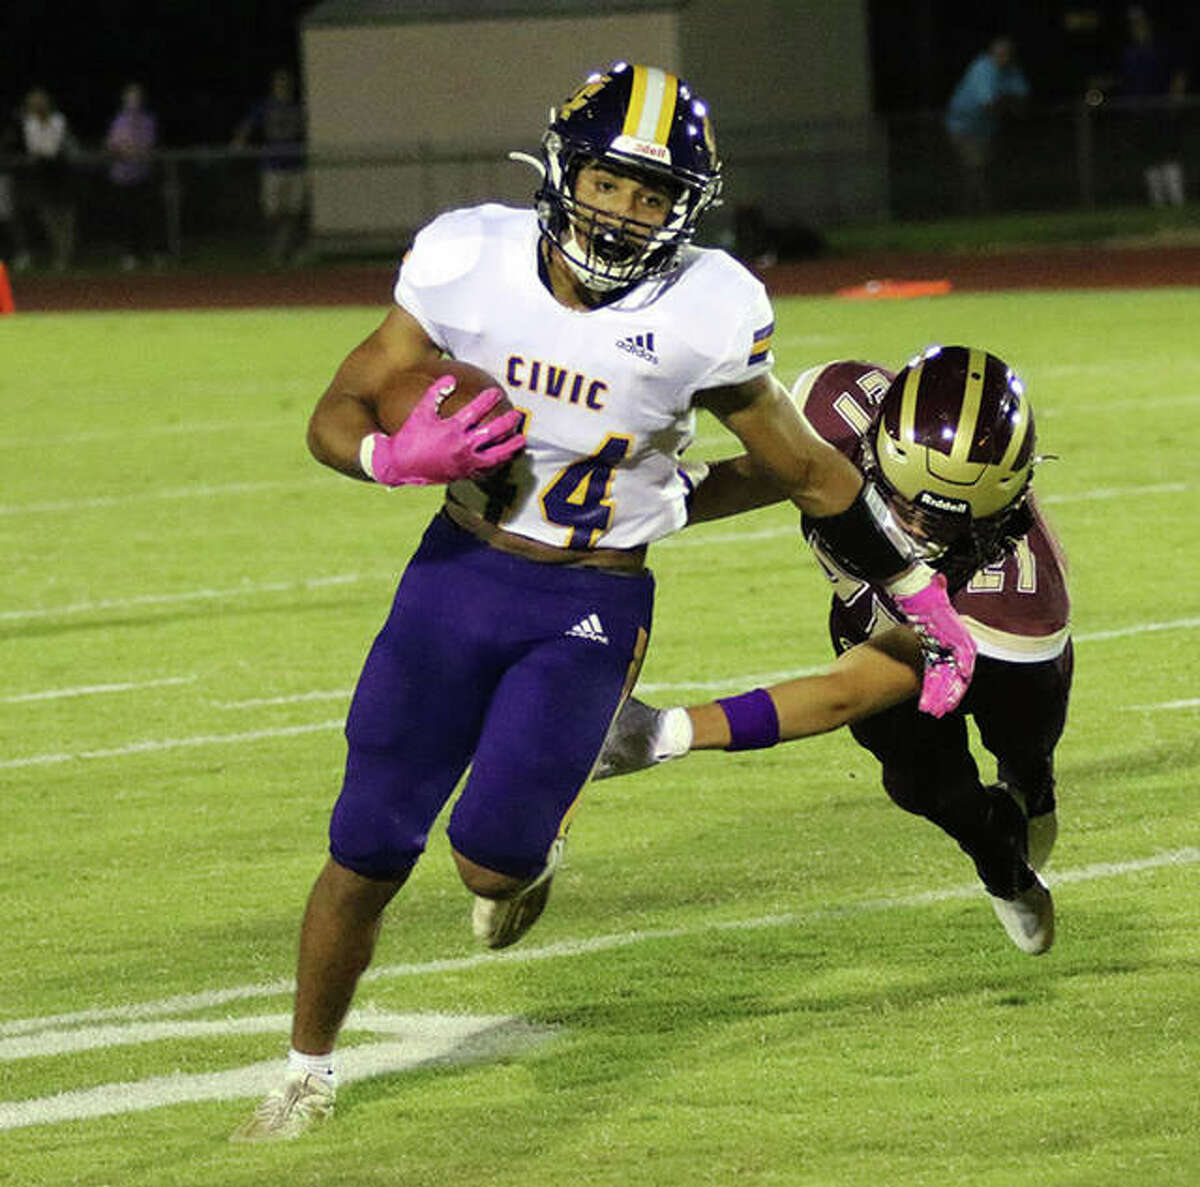 CM's Miguel Gonzalez (left) turns the corner while eluding EA-WR's Kiyu Stilts in the third quarter Friday night at Memorial Stadium in Wood River.